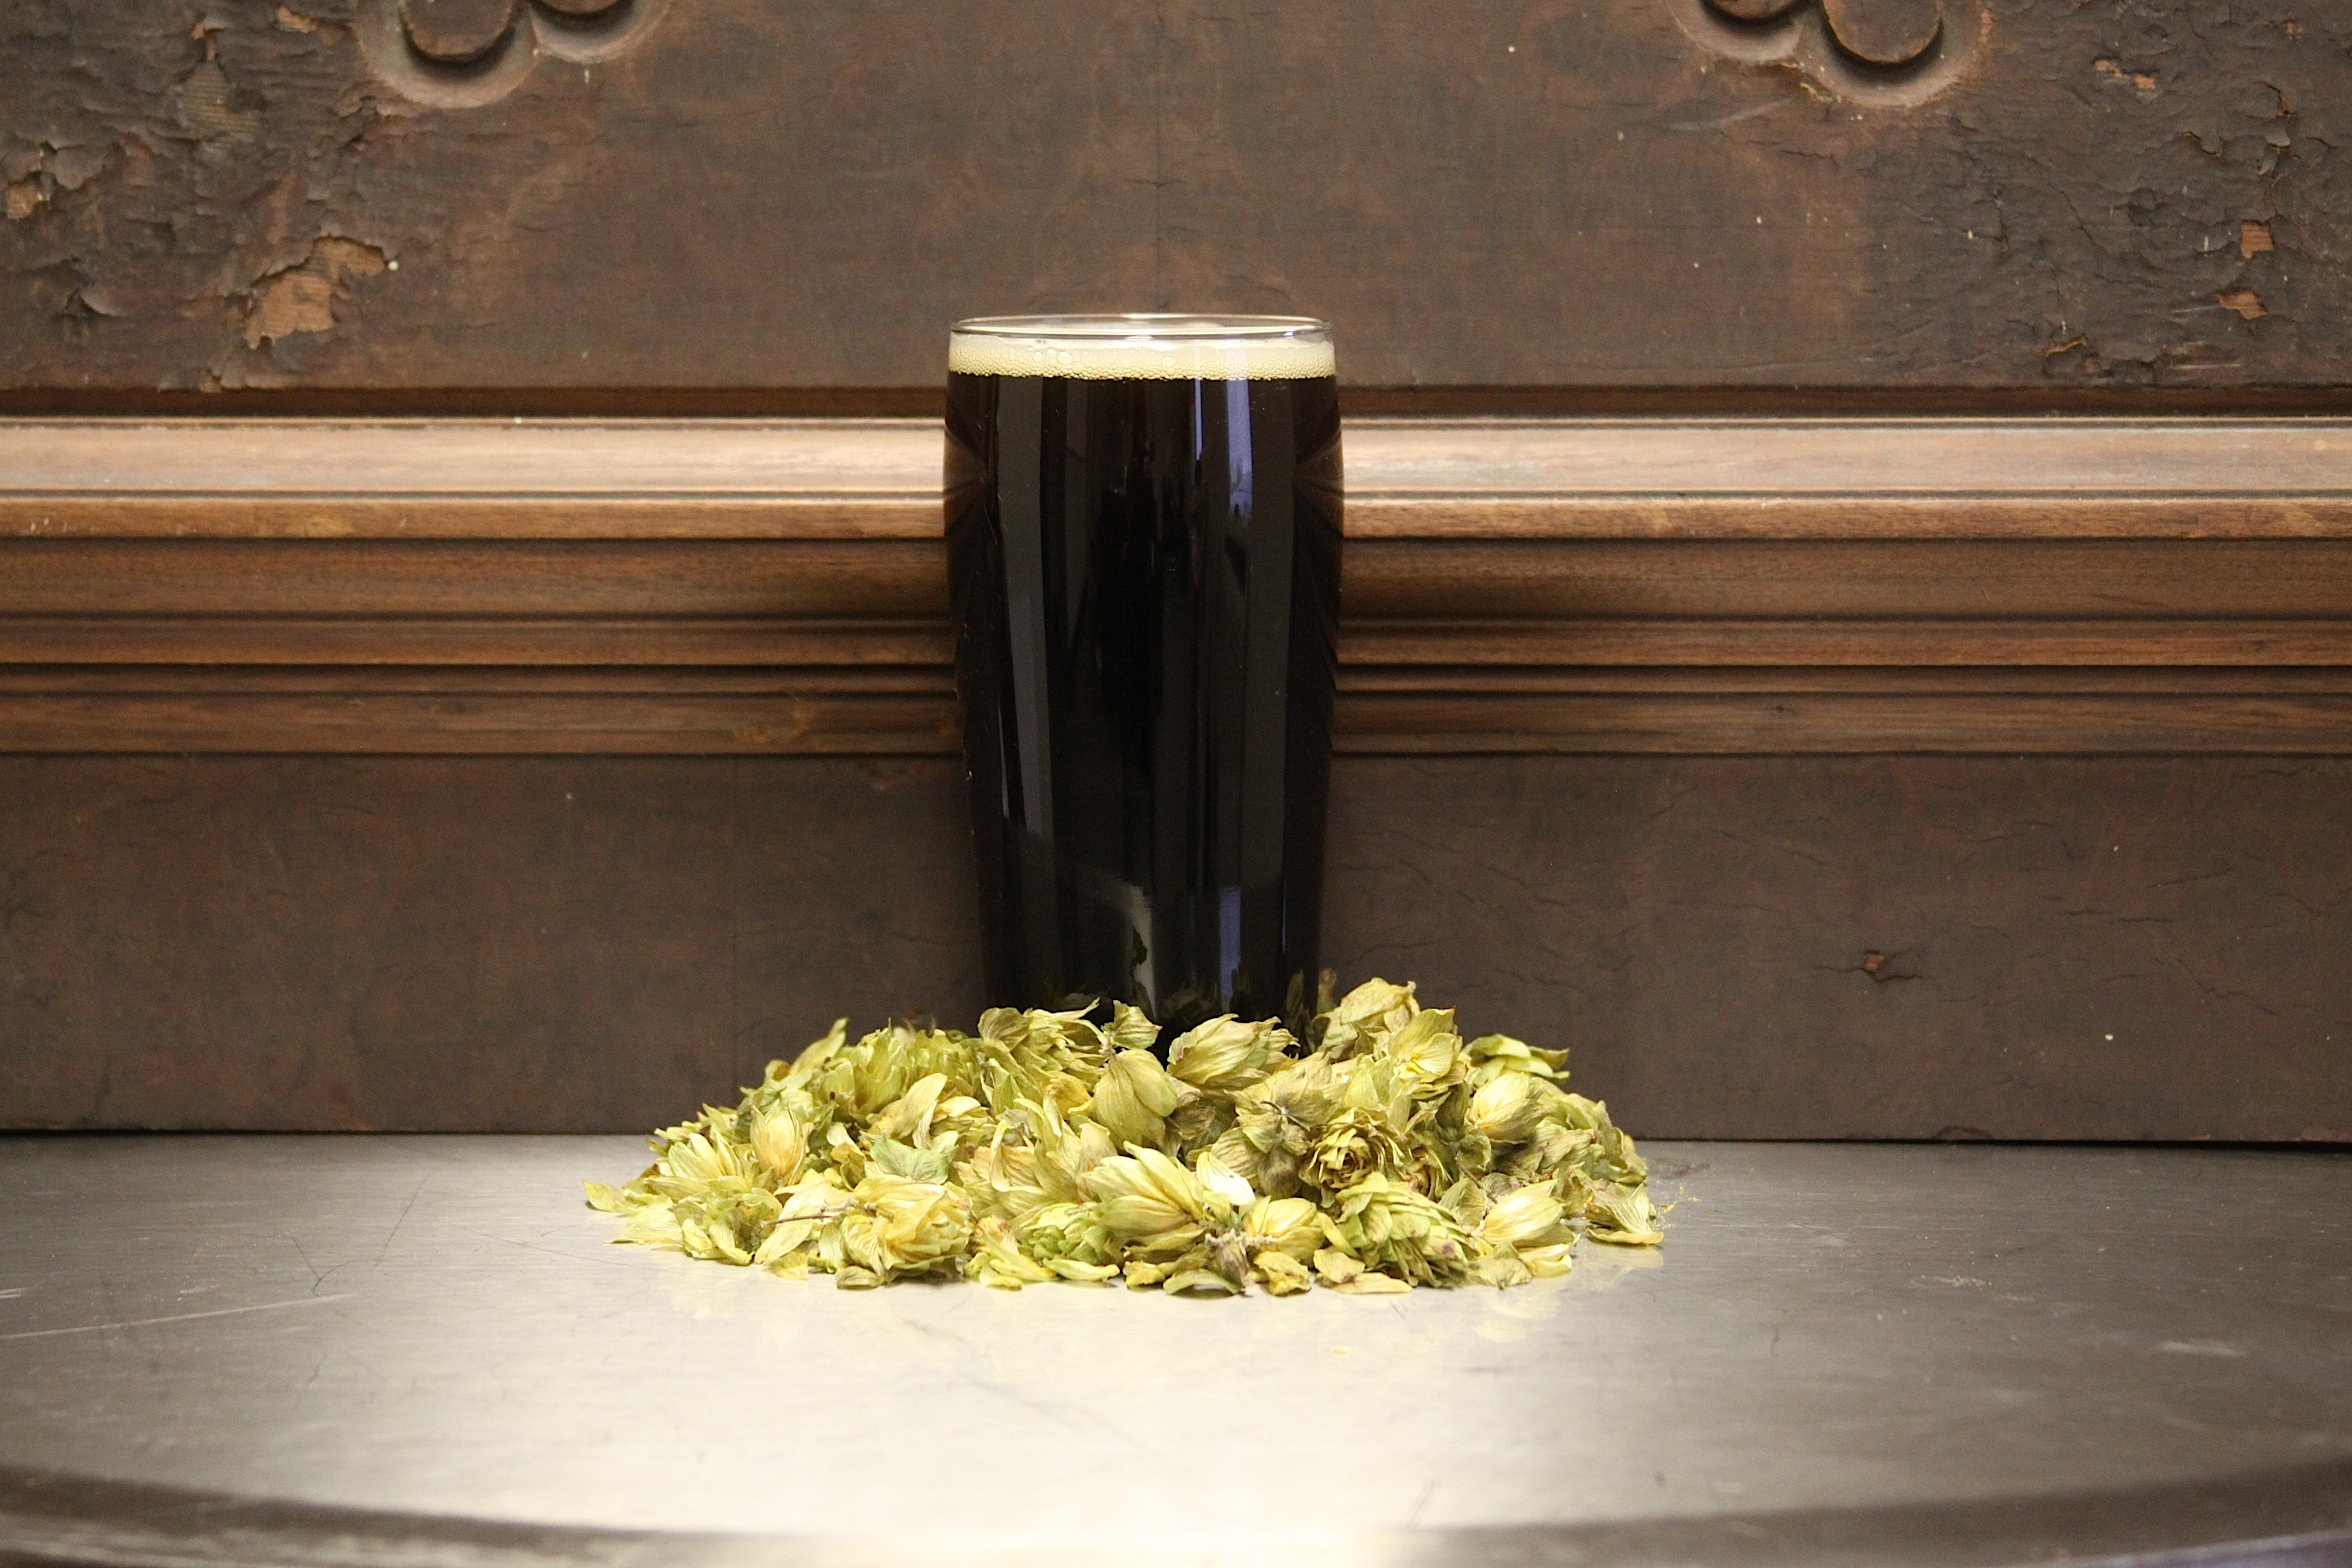 * Our Hurst Haus Brown is named after one of our brewers,Steve Hurst, who is a mastermind of beer recipes. We have decided to brew this as a winter beer, but may have to keep it around for a little longer. Stay tuned.